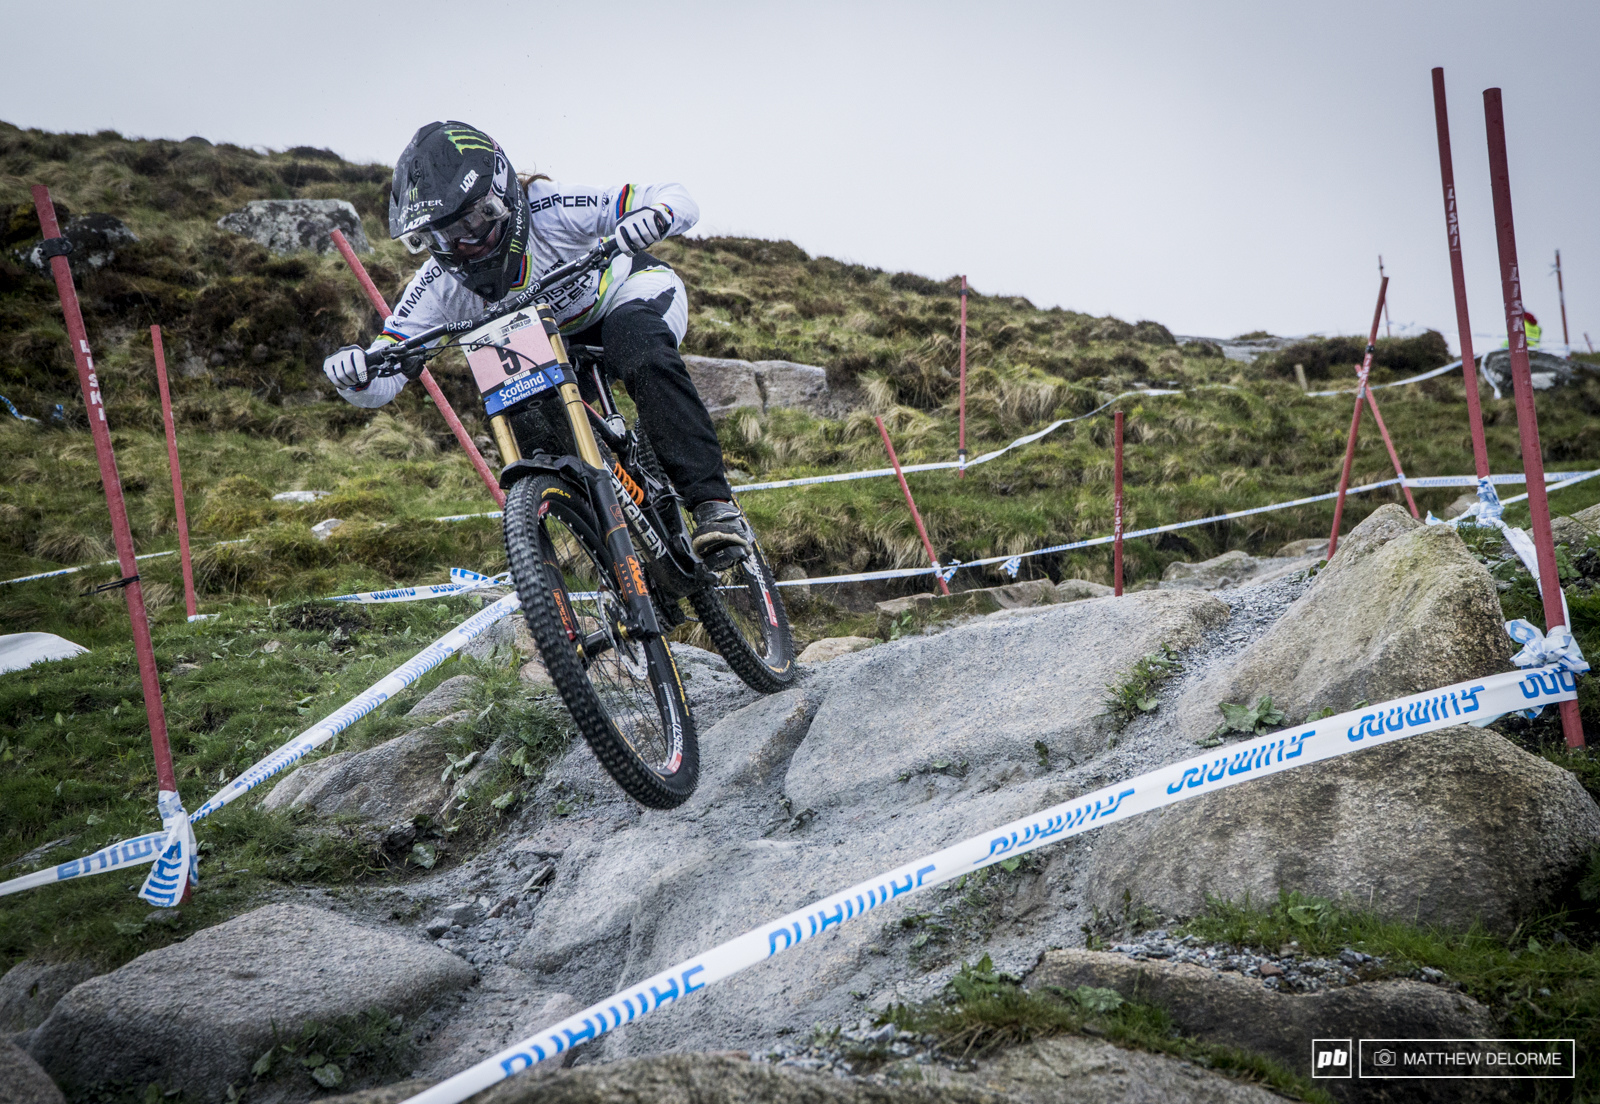 Manon Carpenter took fourth today at Fort Bill. Carpenter will be looking to climb higher in the rankings in Leogang.